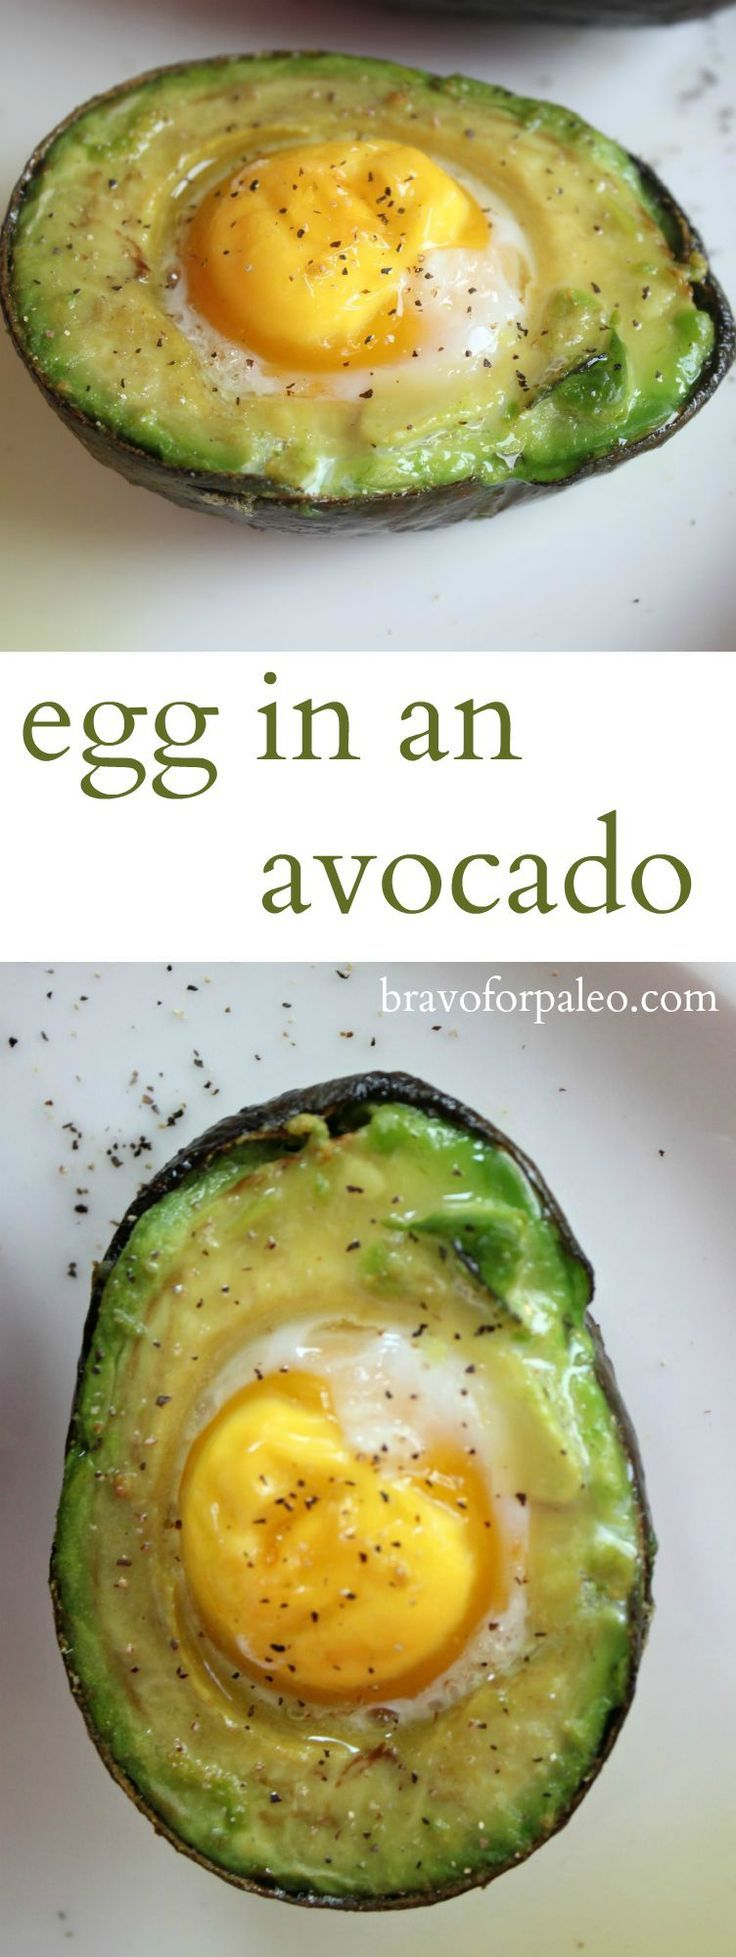 HOLY avocado! You have to try this recipe. It is so delicious.